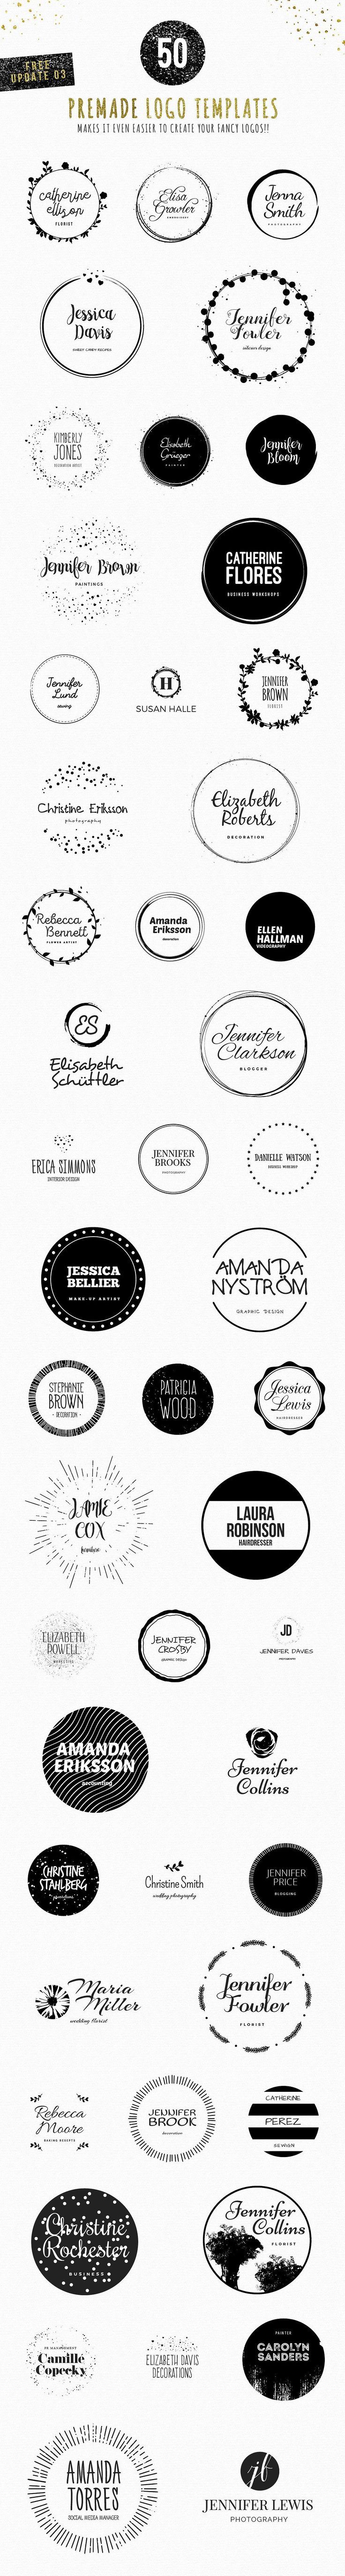 Feminine Logo Creator Circle Edition by WornOutMedia on @creativemarket